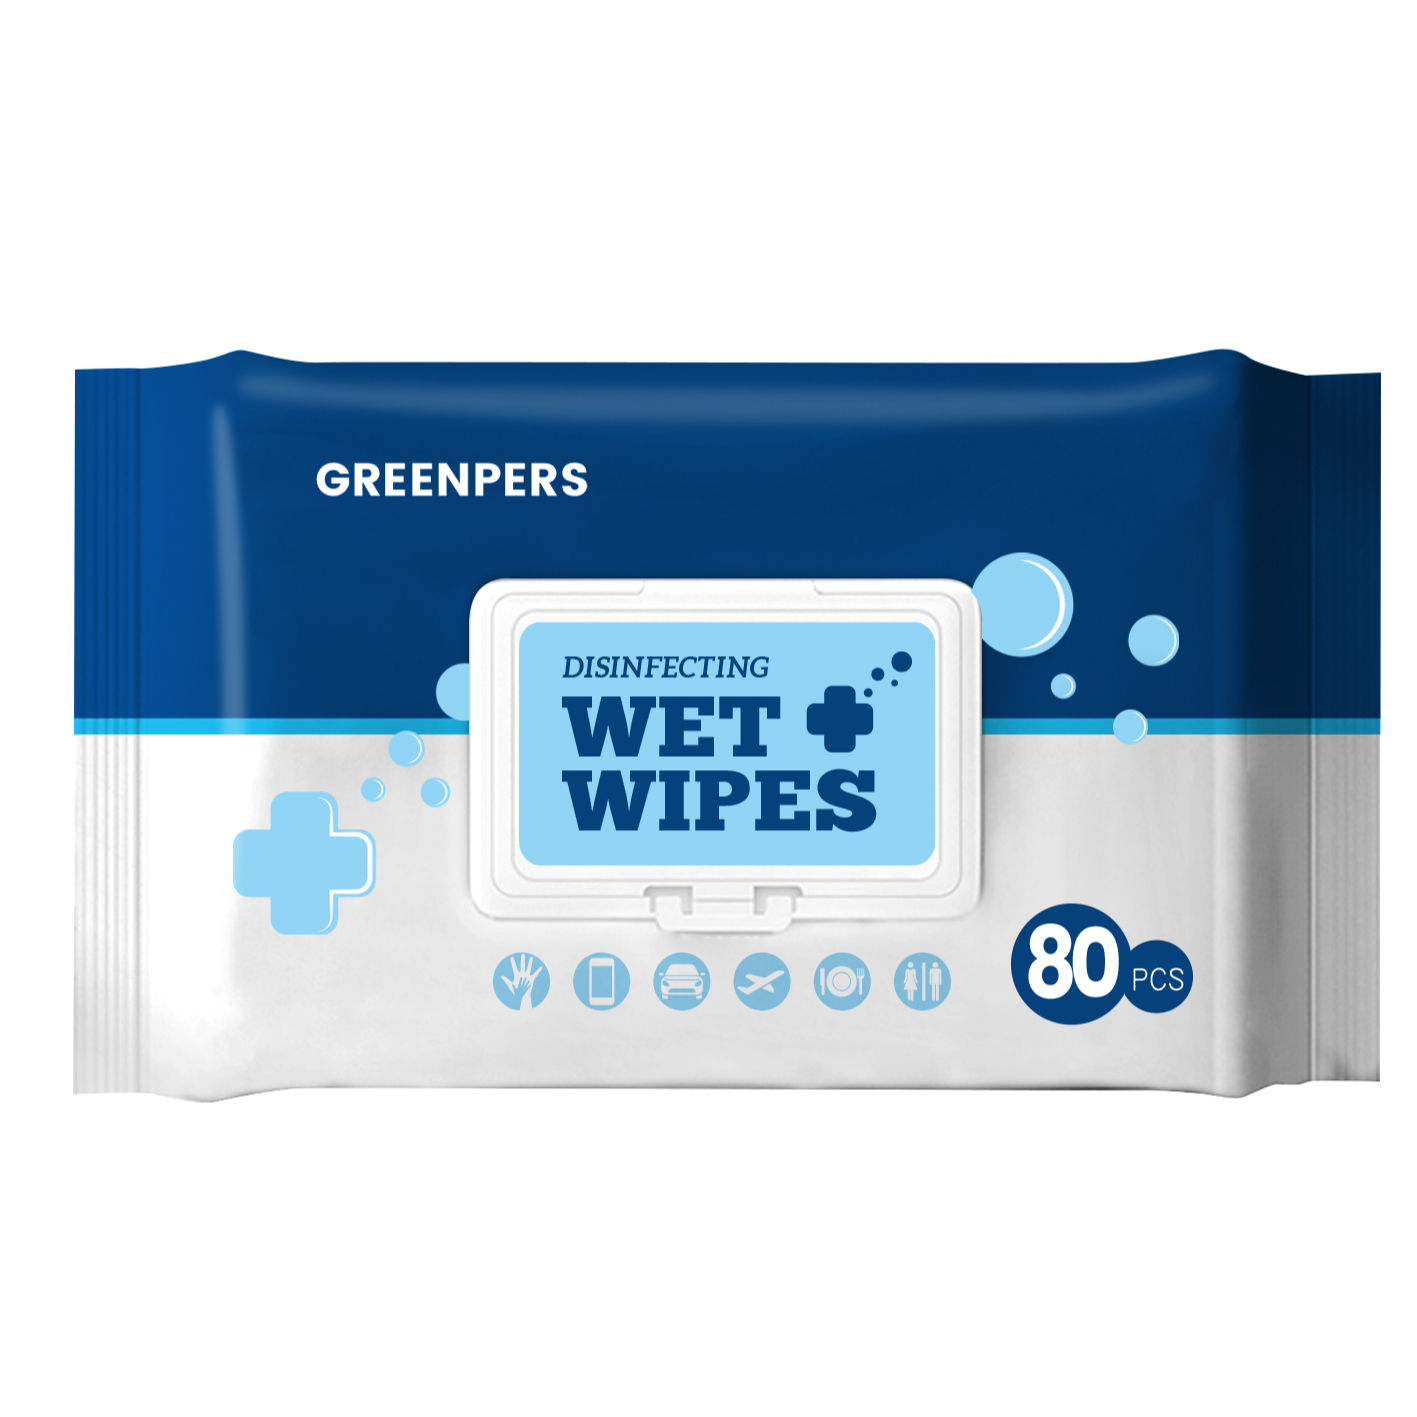 75% alcohol wipes 80 packs clean sterilization wet wipes home office disposable disinfection wipes